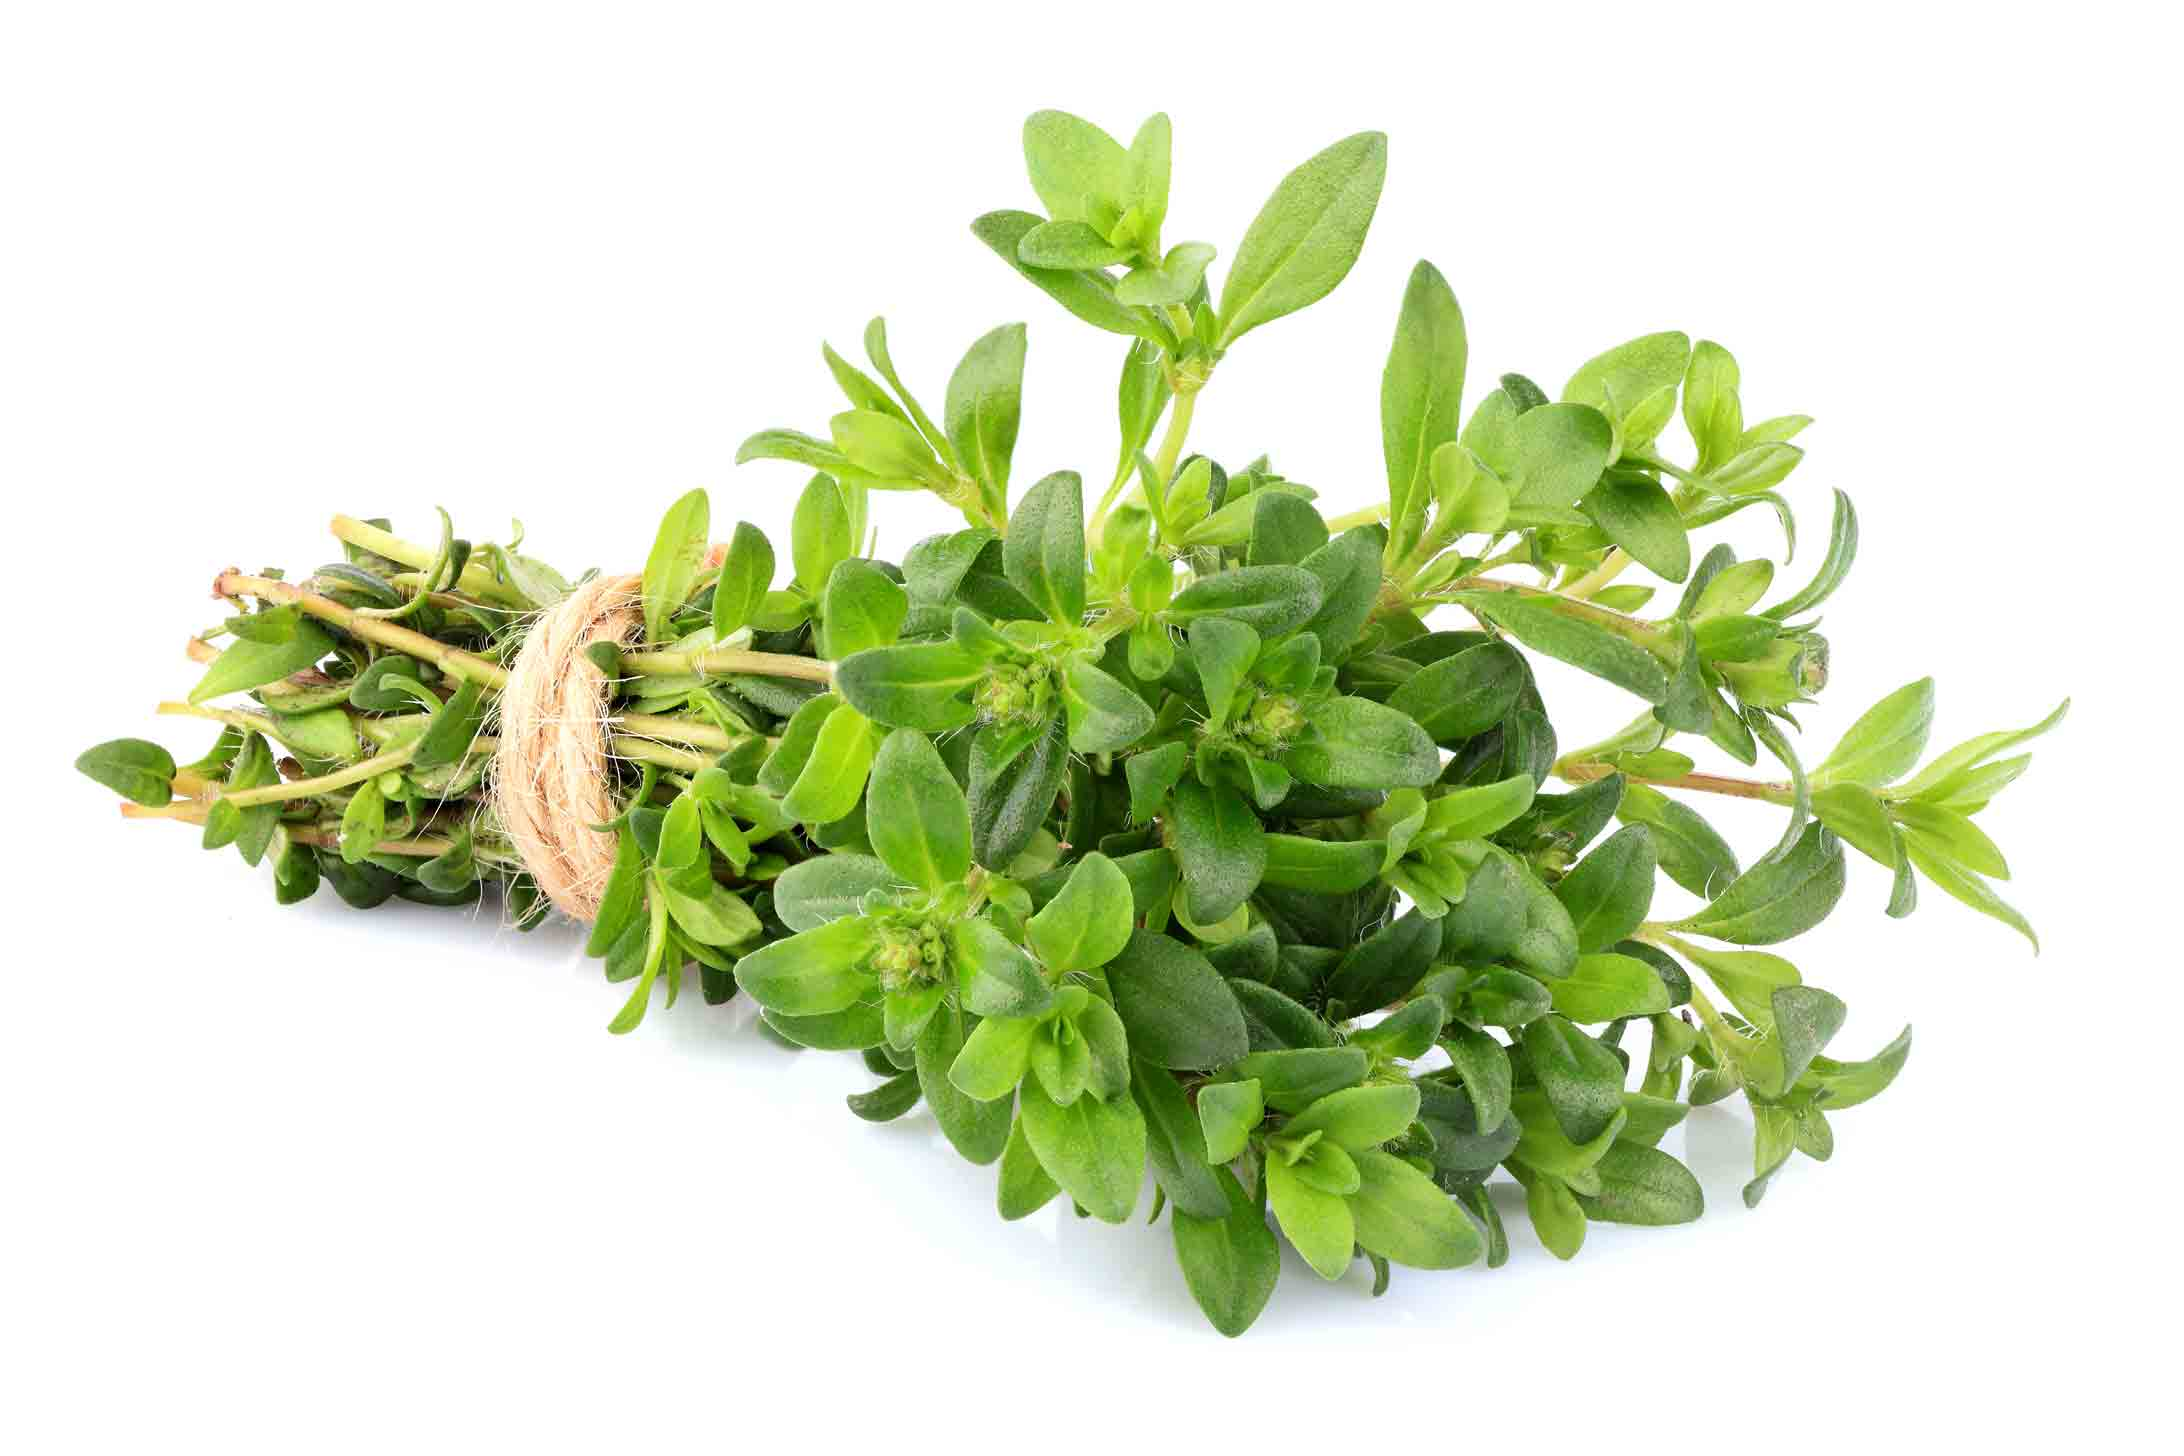 Fresh green thyme bunch